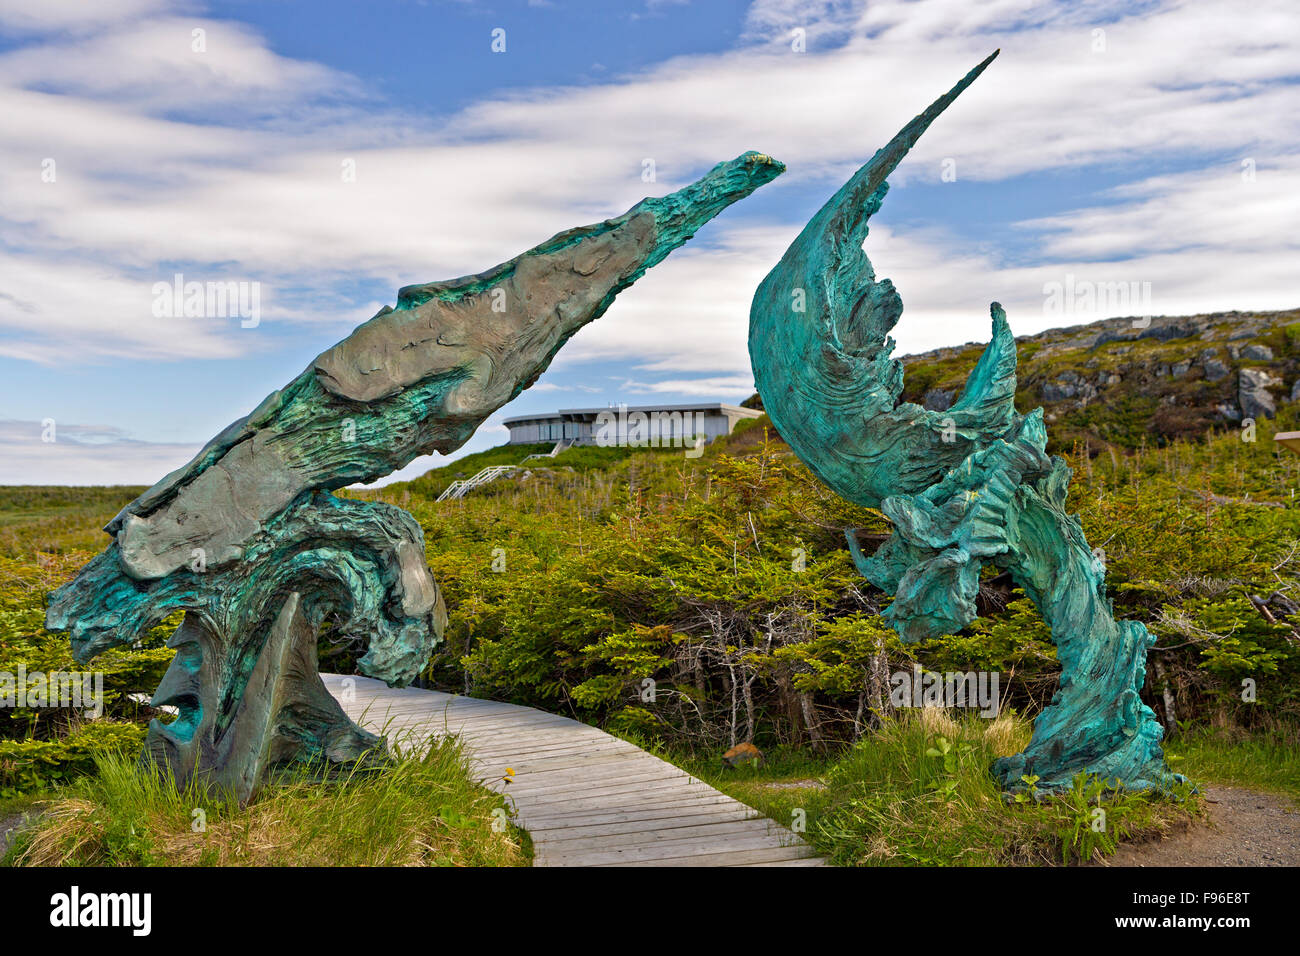 Bronze sculpture titled 'Meeting of two worlds' unveiled on July 5, 2002 at L'Anse aux Meadows,  Newfoundland - Stock Image